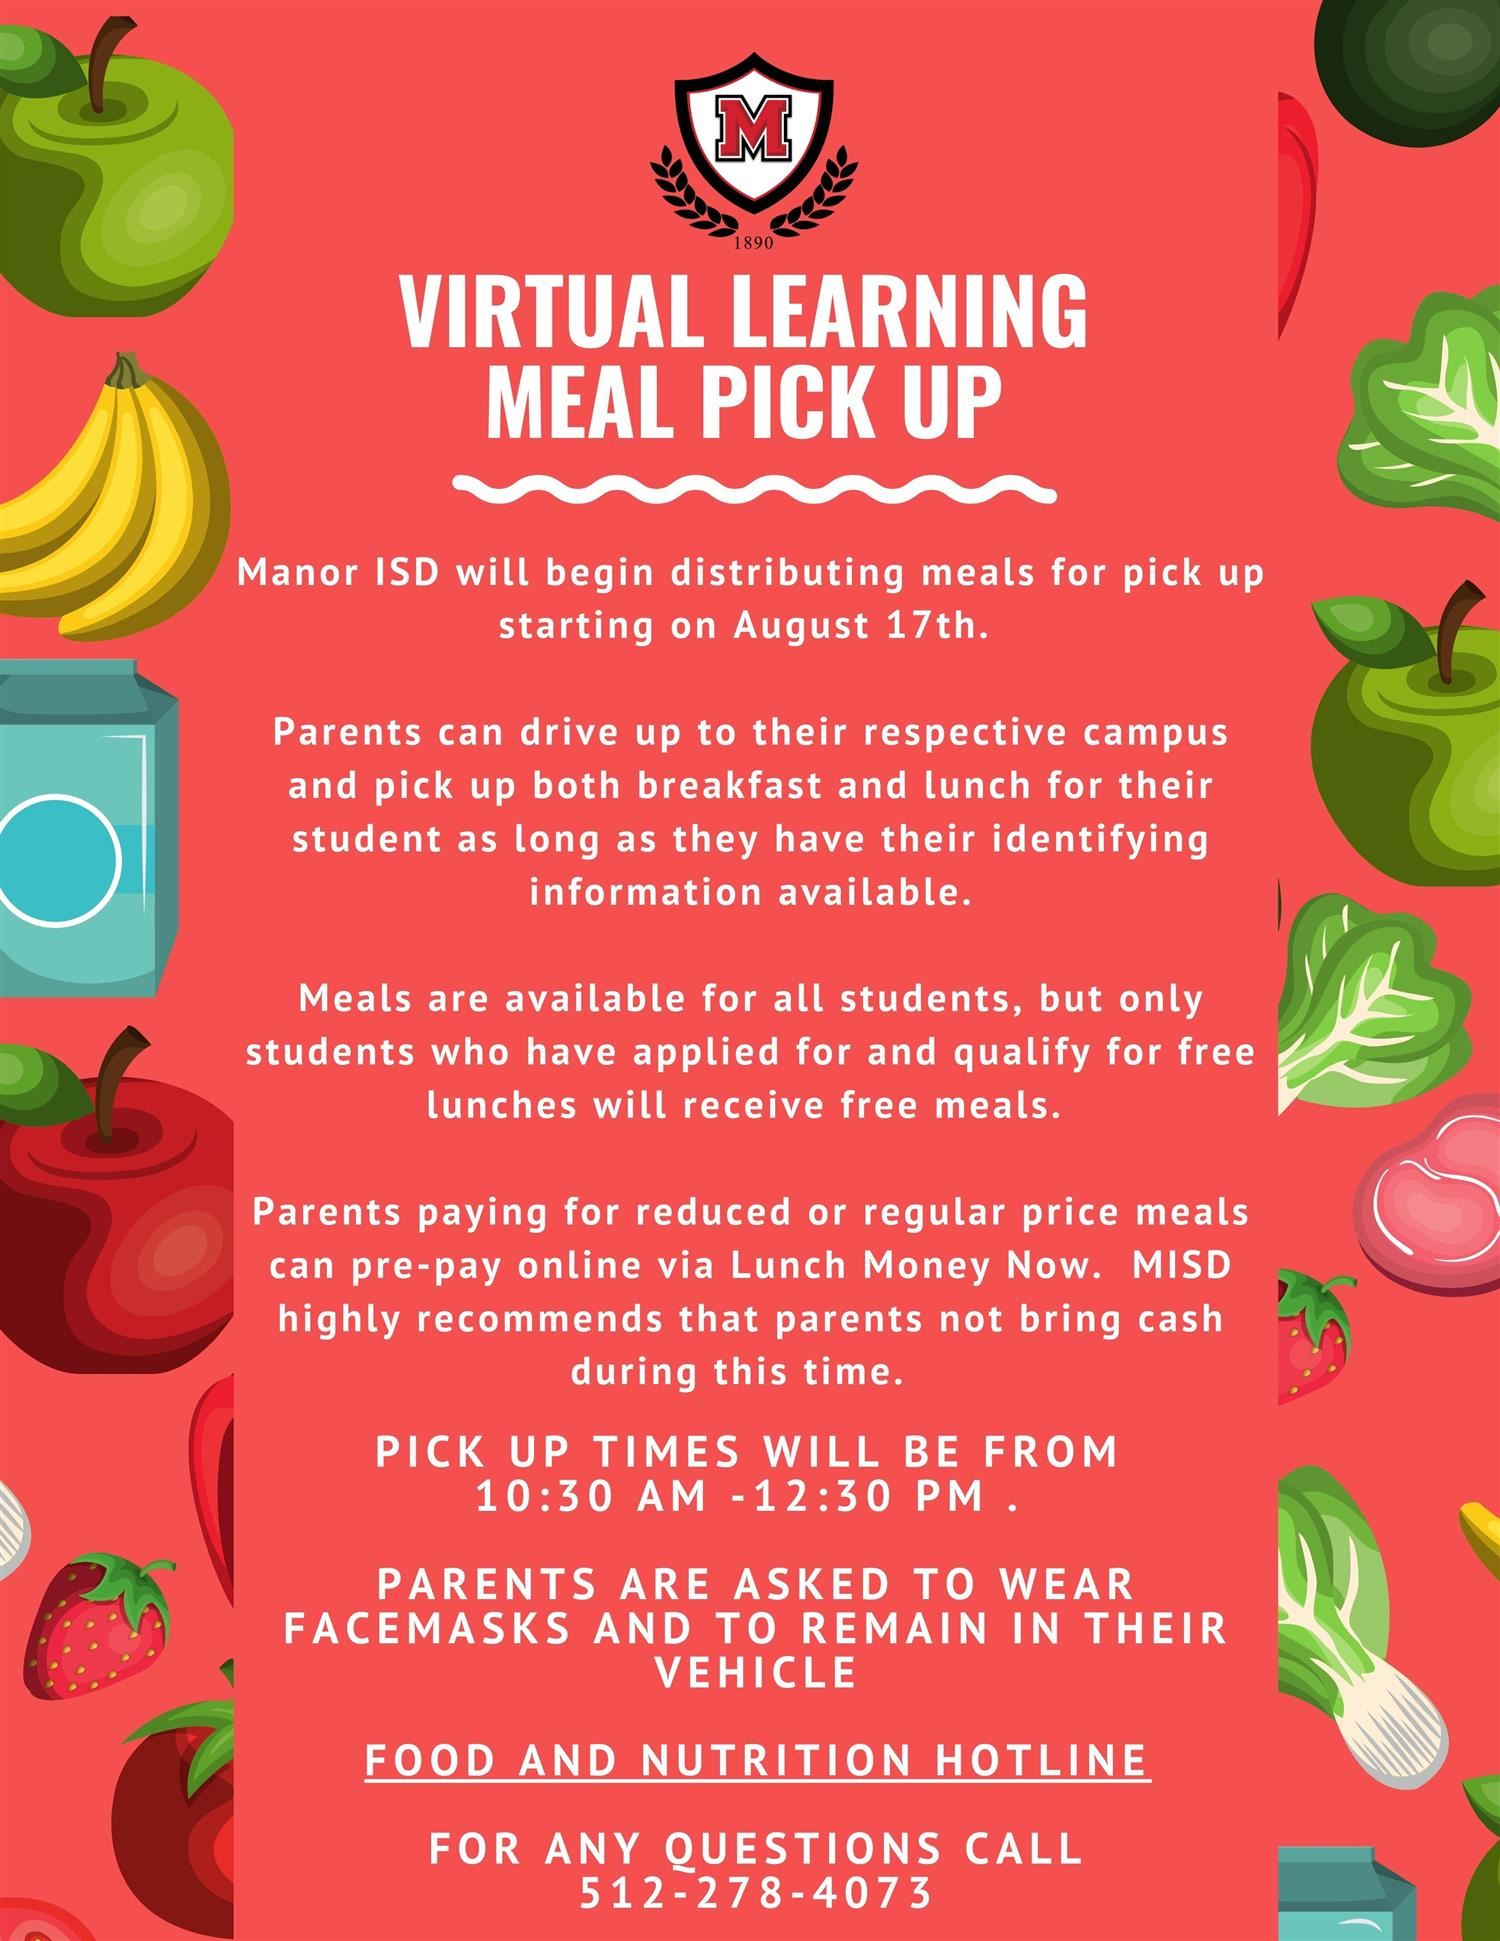 VIRTUAL LEARNING  MEAL PICK UP ENGLISH.jpg